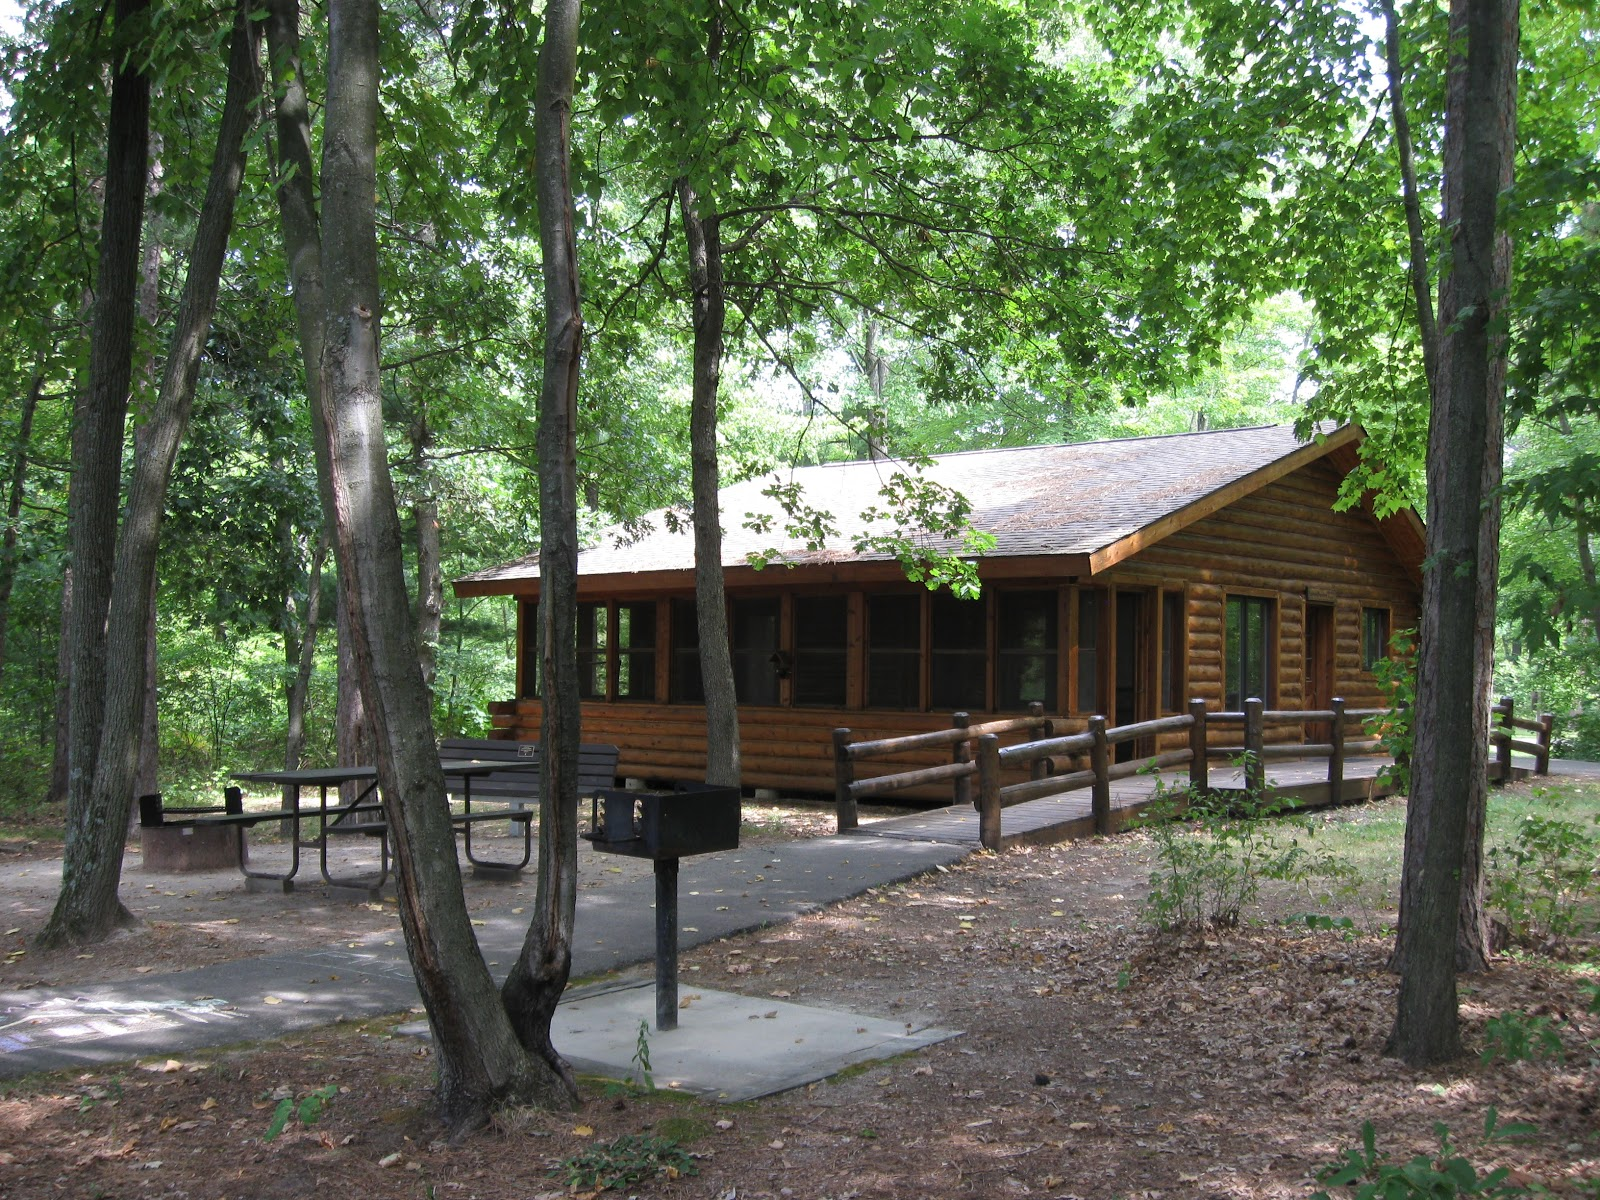 Superb img of Cabin in the Woods.JPG with #649338 color and 1600x1200 pixels